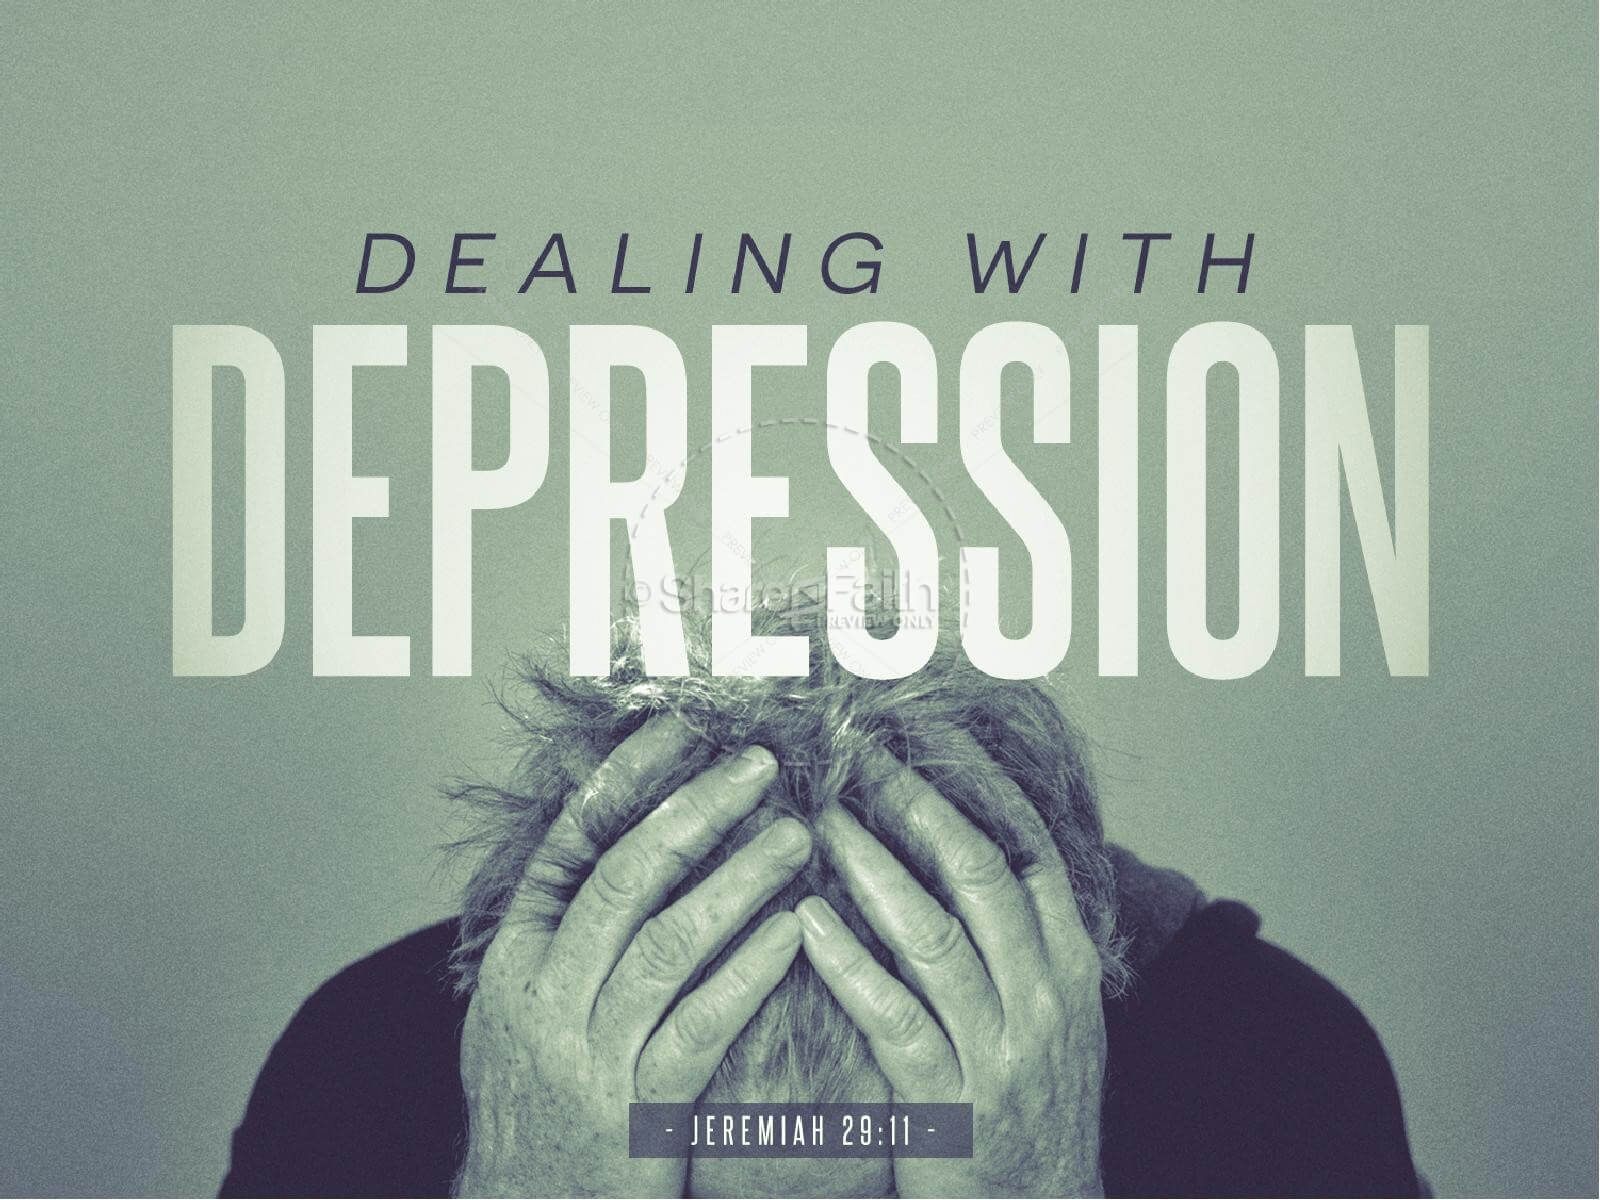 Dealing With Depression Christian Powerpoint | Powerpoint throughout Depression Powerpoint Template